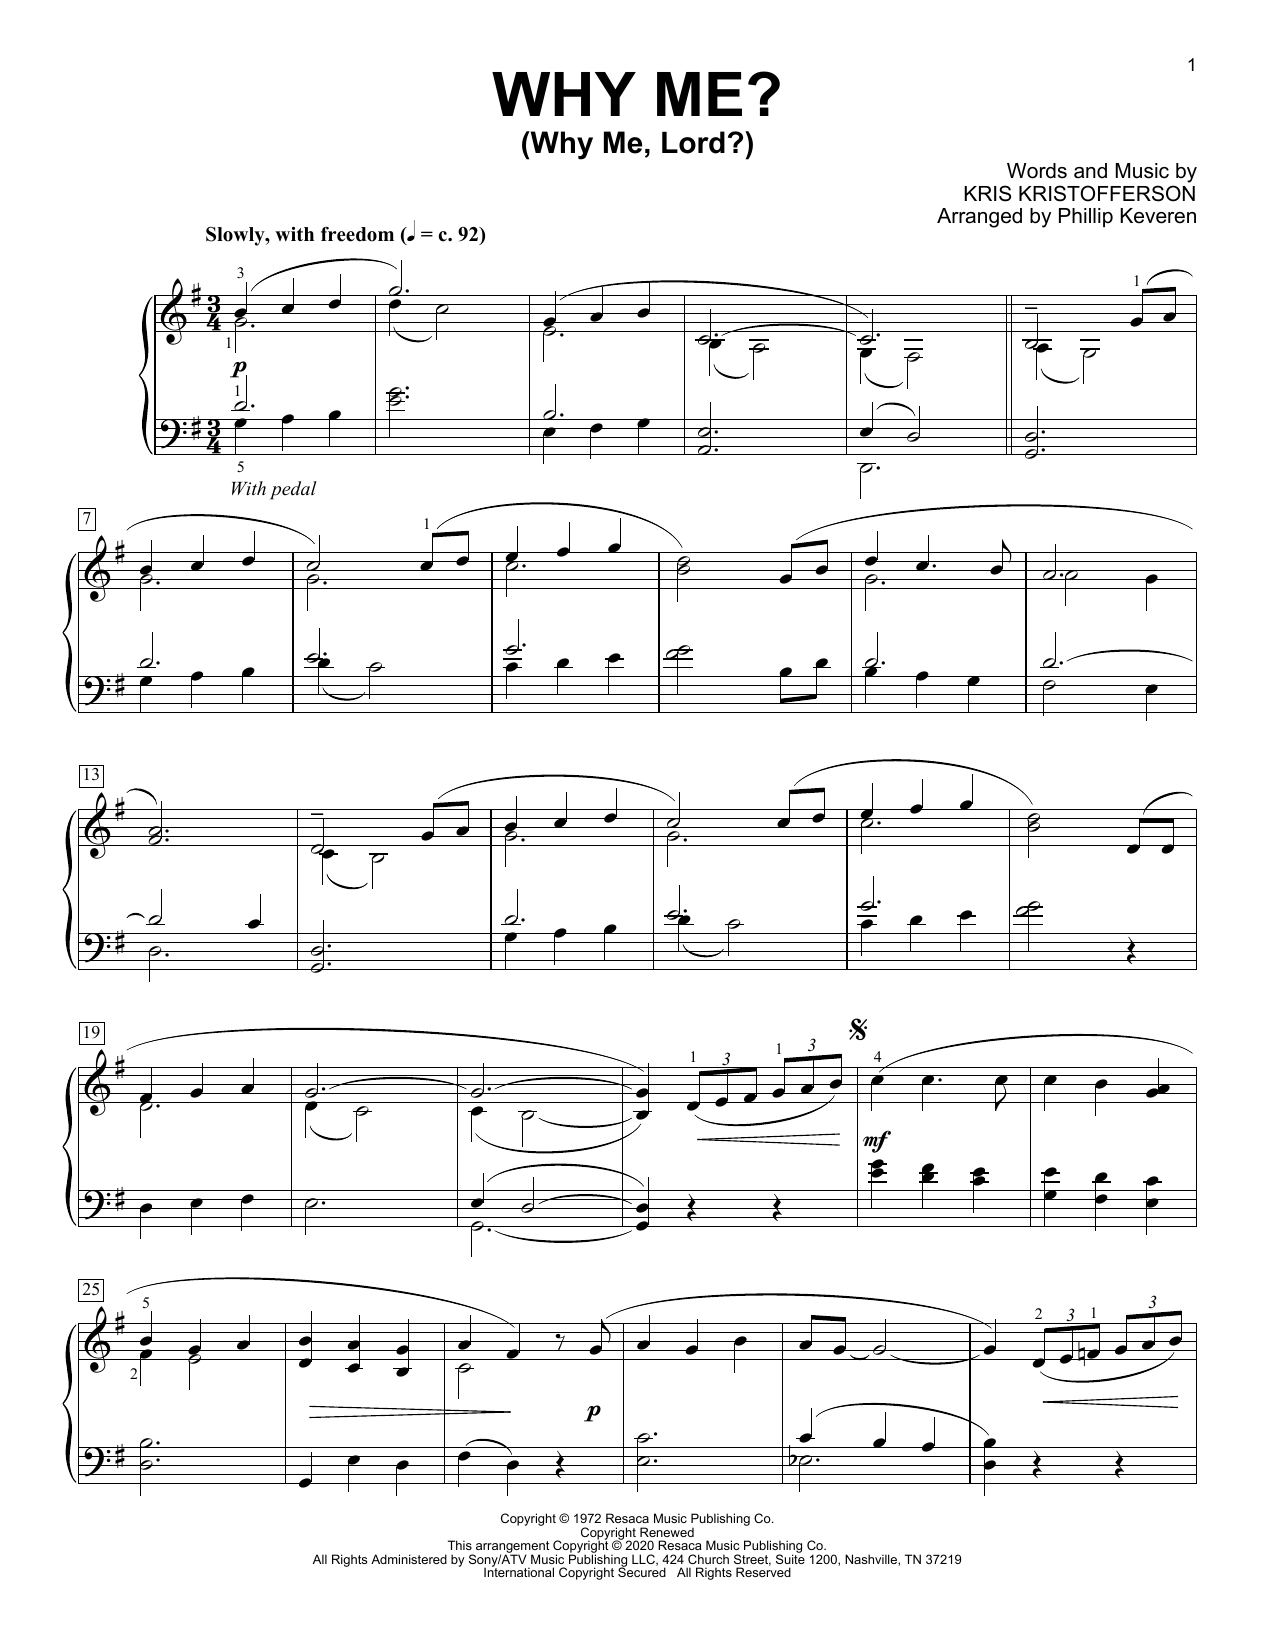 Kris Kristofferson Why Me? (Why Me, Lord?) [Classical version] (arr. Phillip Keveren) sheet music notes printable PDF score